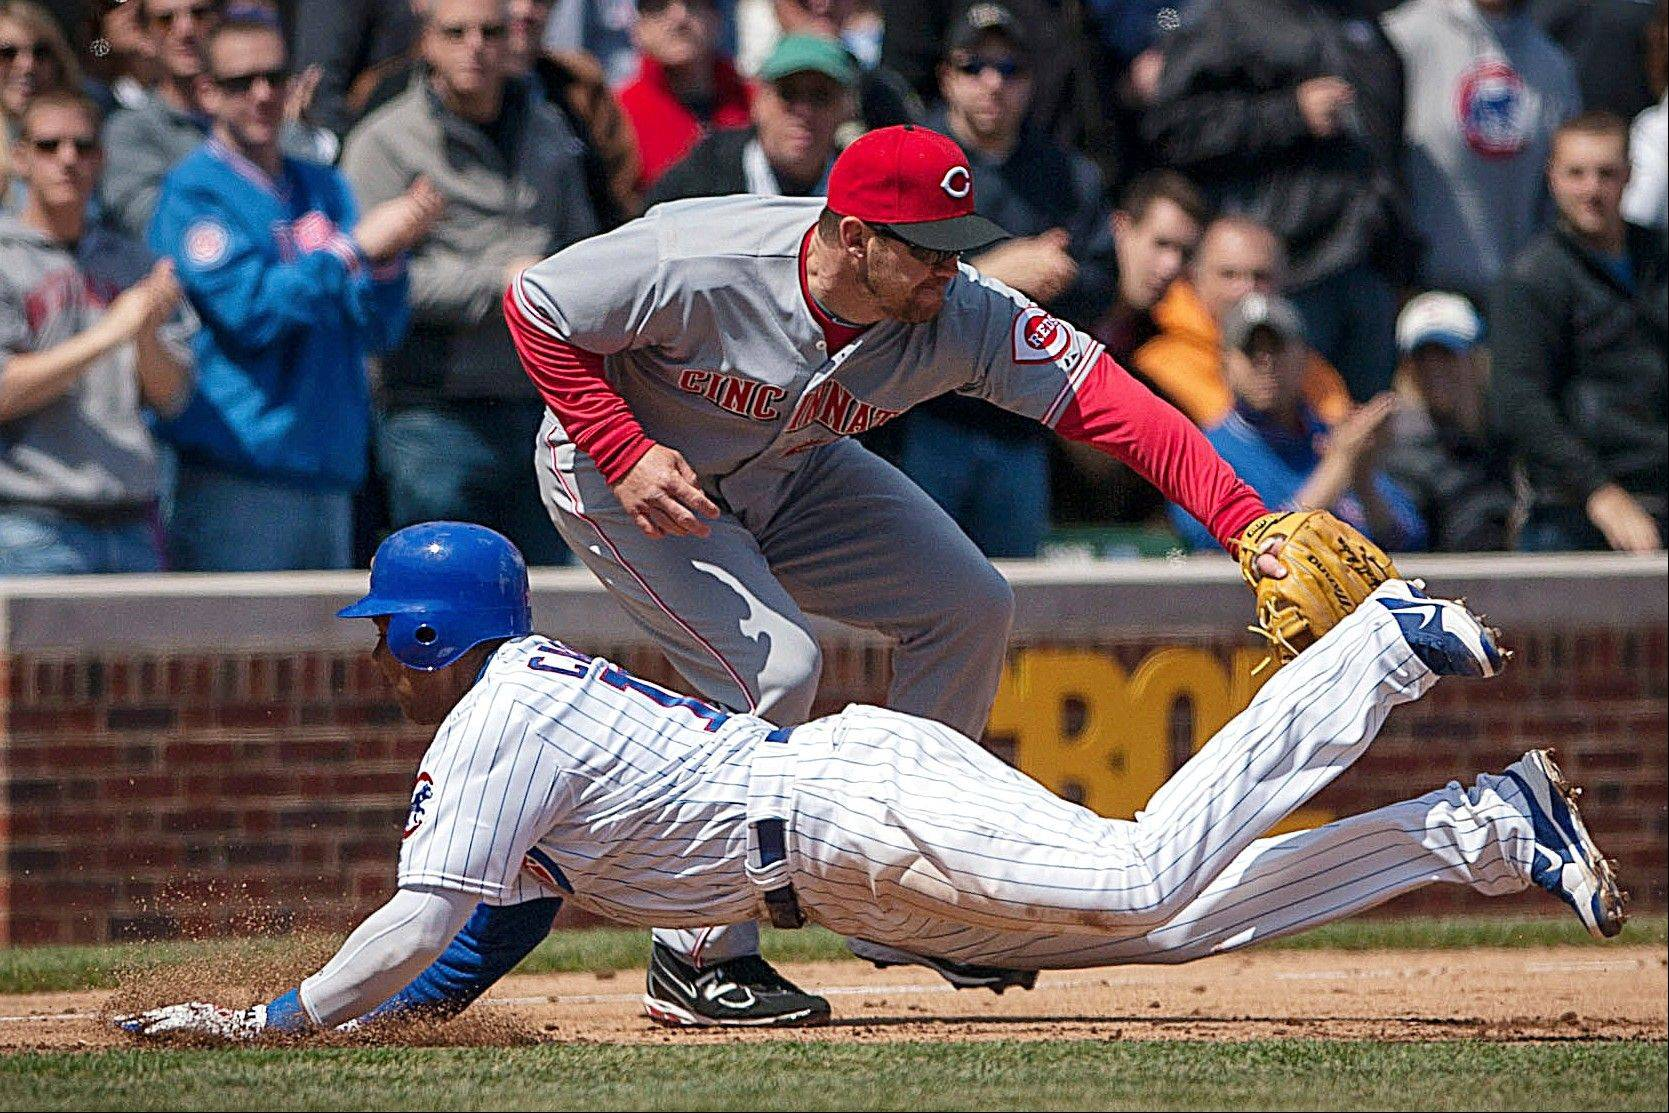 Paul Maholm leads Cubs past Reds 6-1